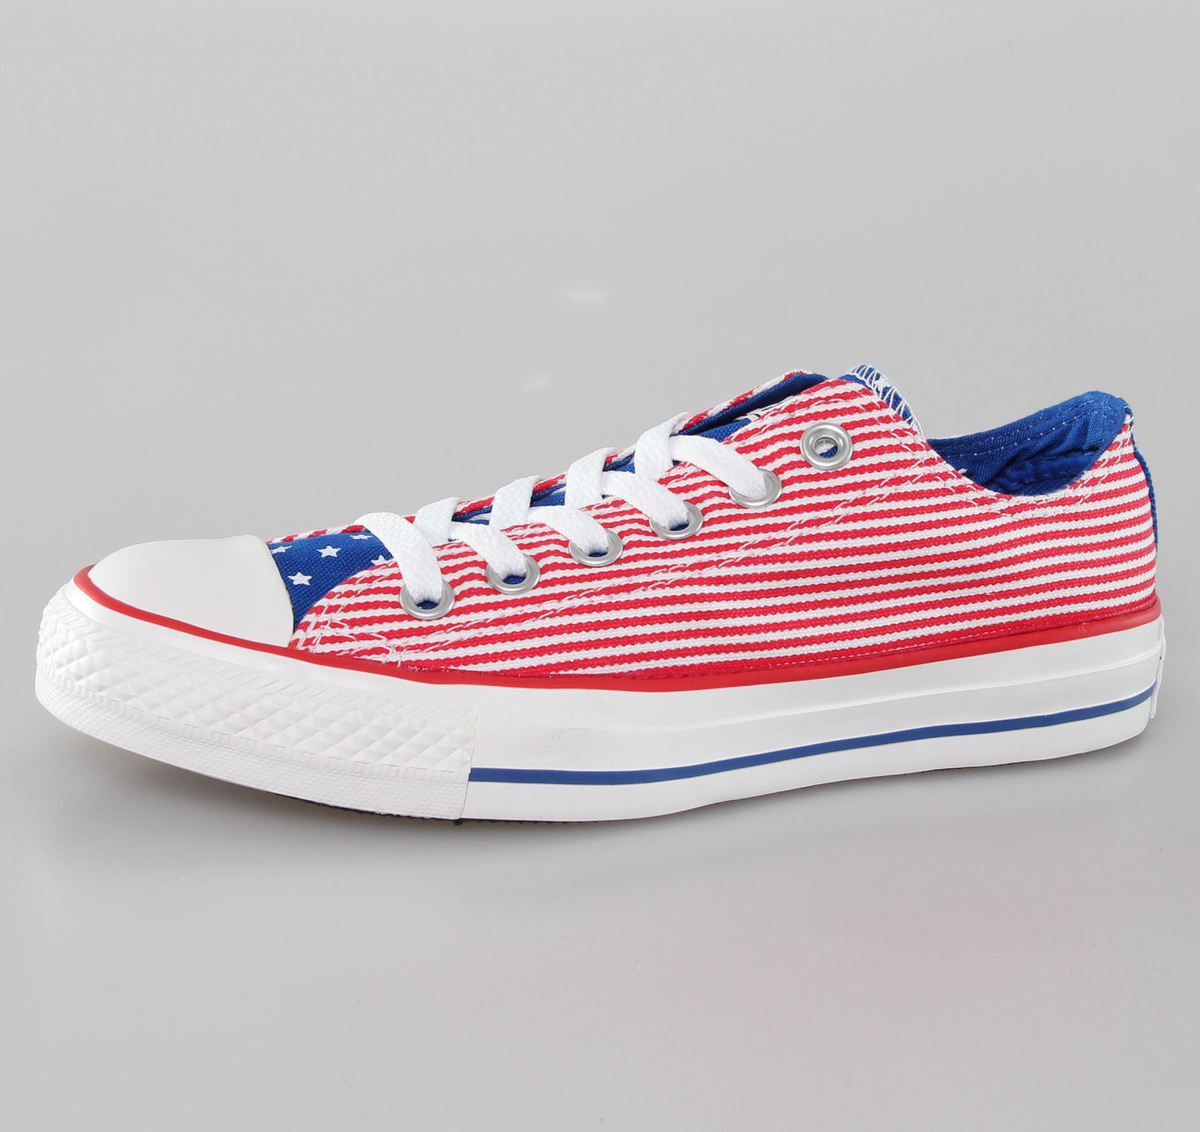 boty CONVERSE - Chuck Taylor All Star - Red/White/Blue - C144829F